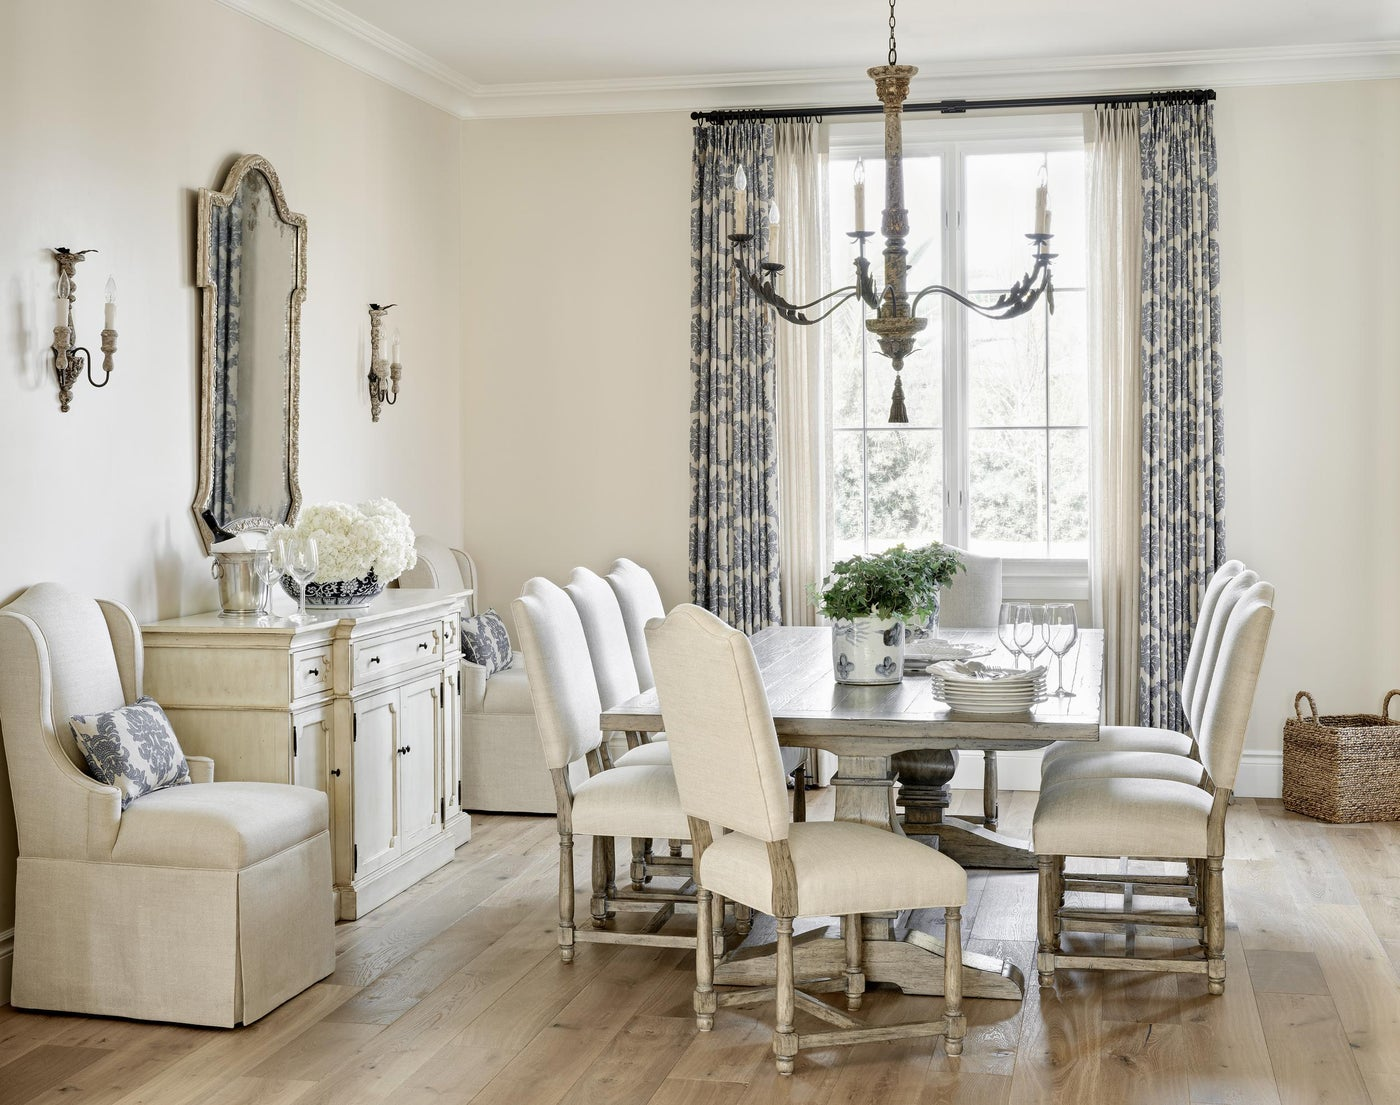 Mediterranean Dining Space with a Neutral Palette